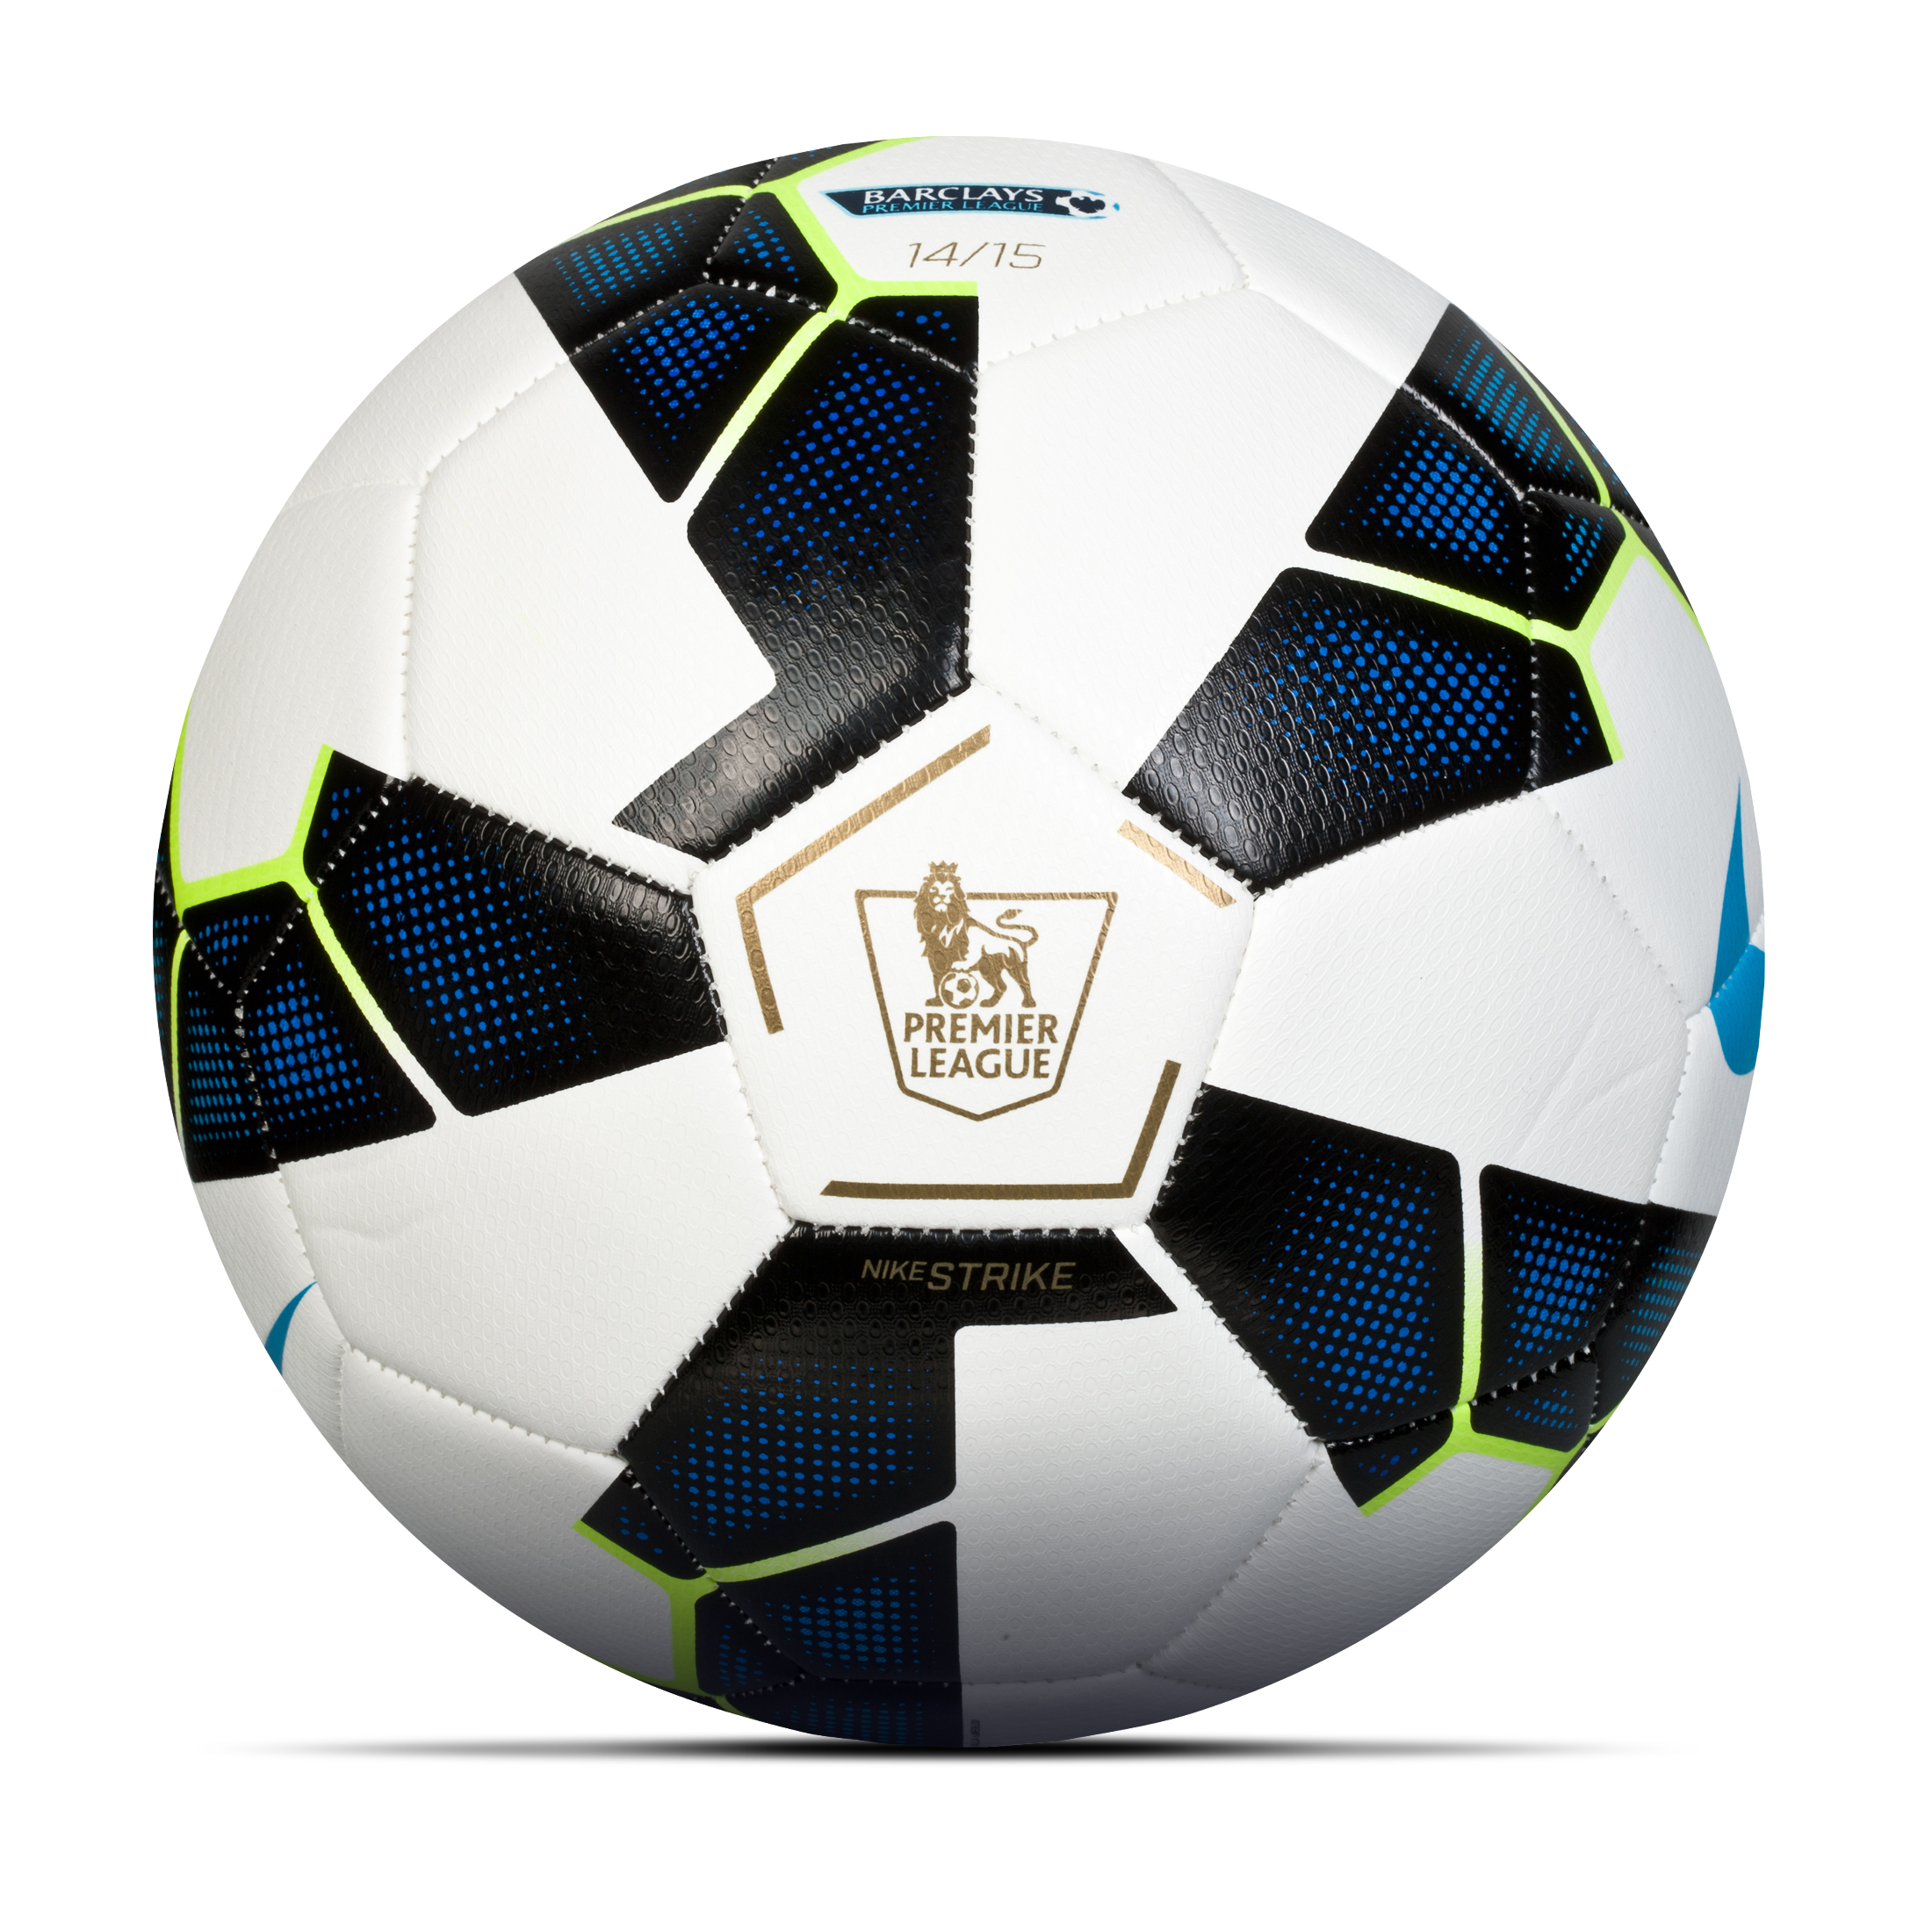 Nike Strike Premier League Replica Ball 14/15 White